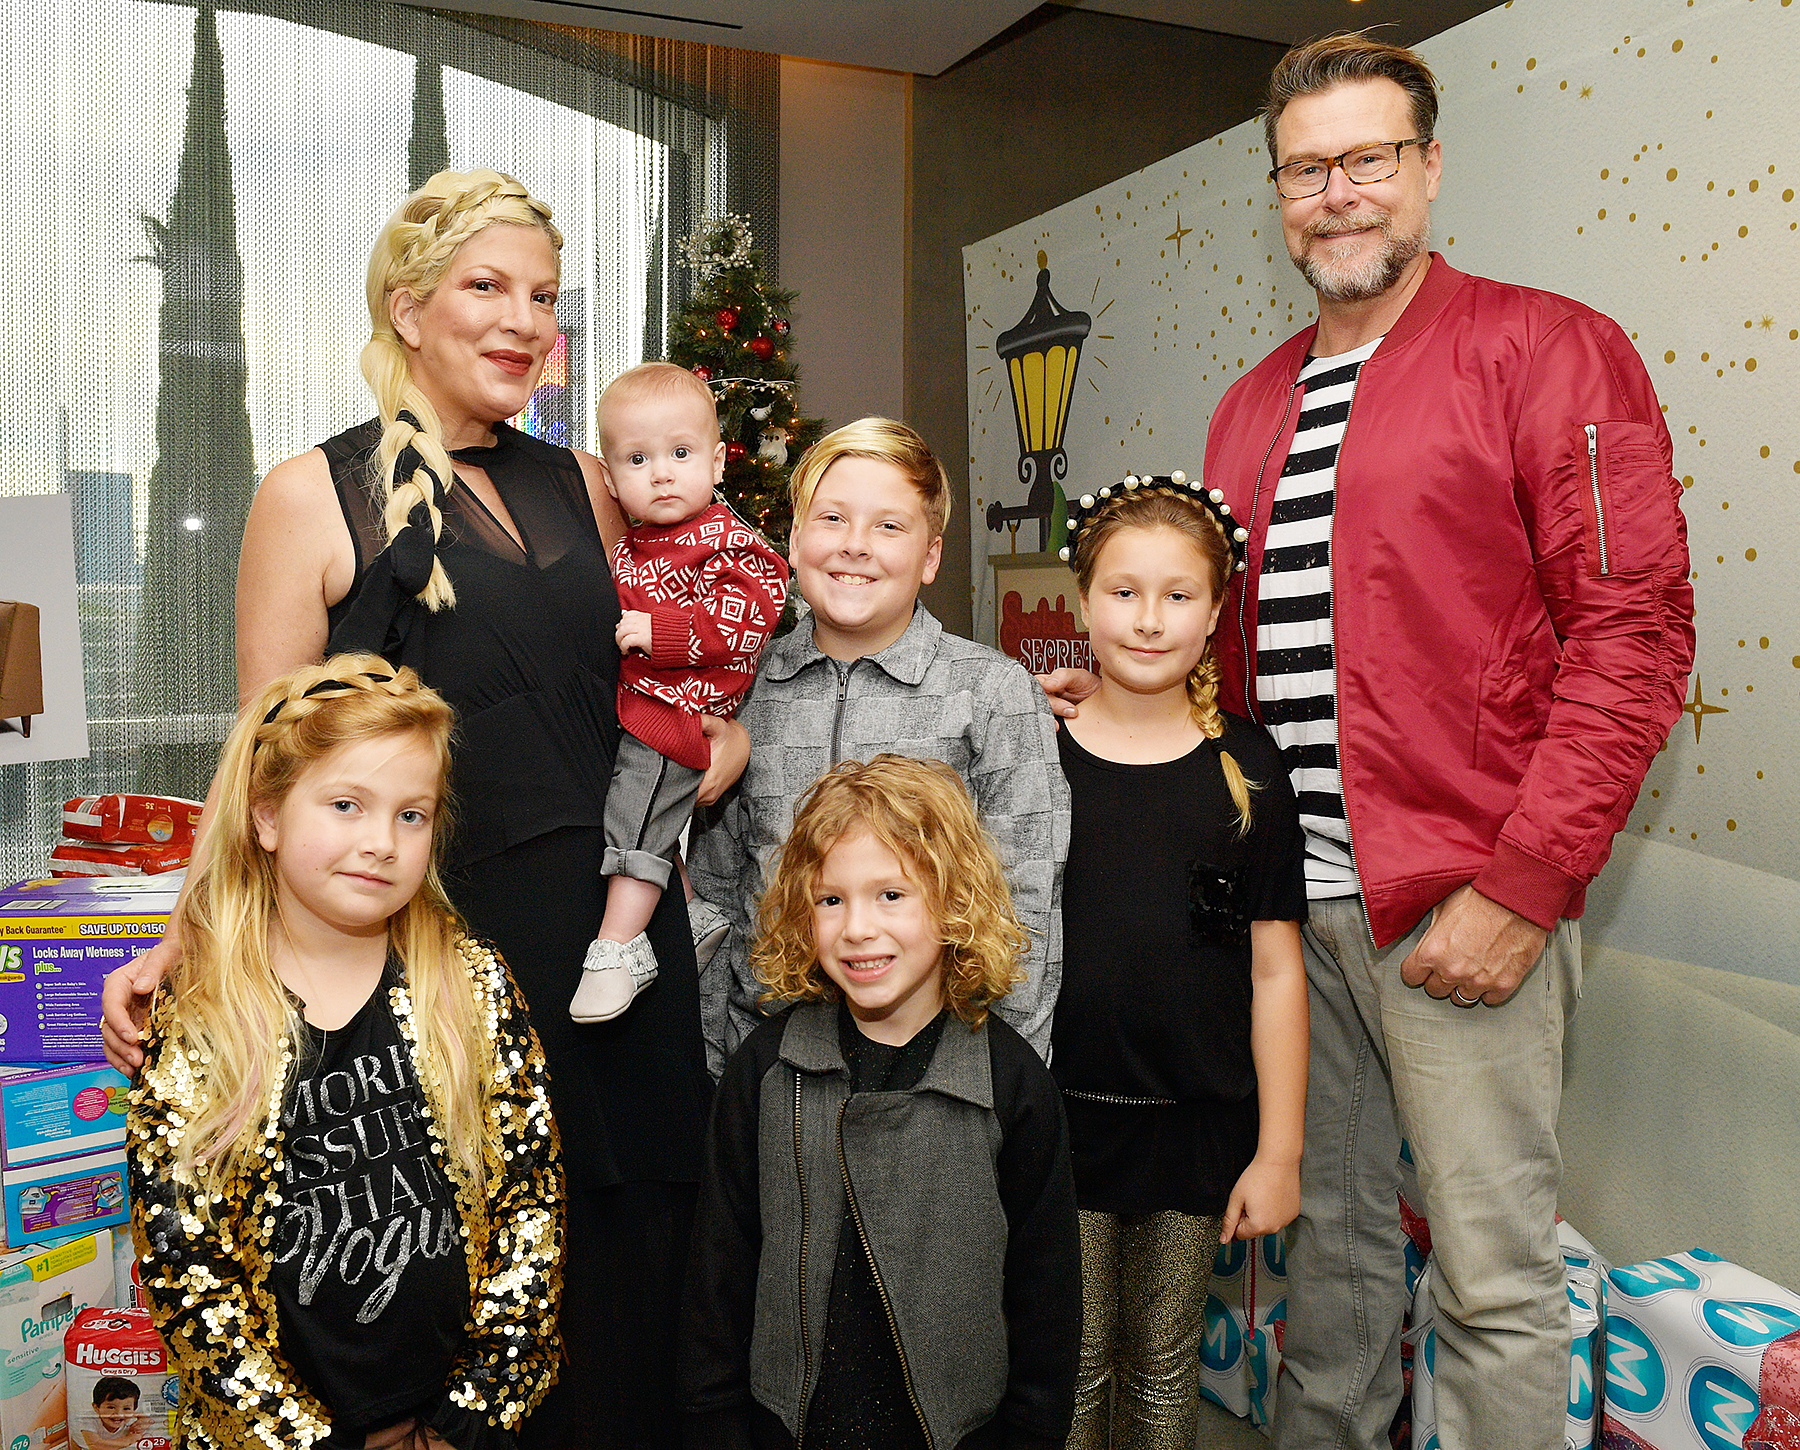 Tori Spelling Family and Friends Worried About Her